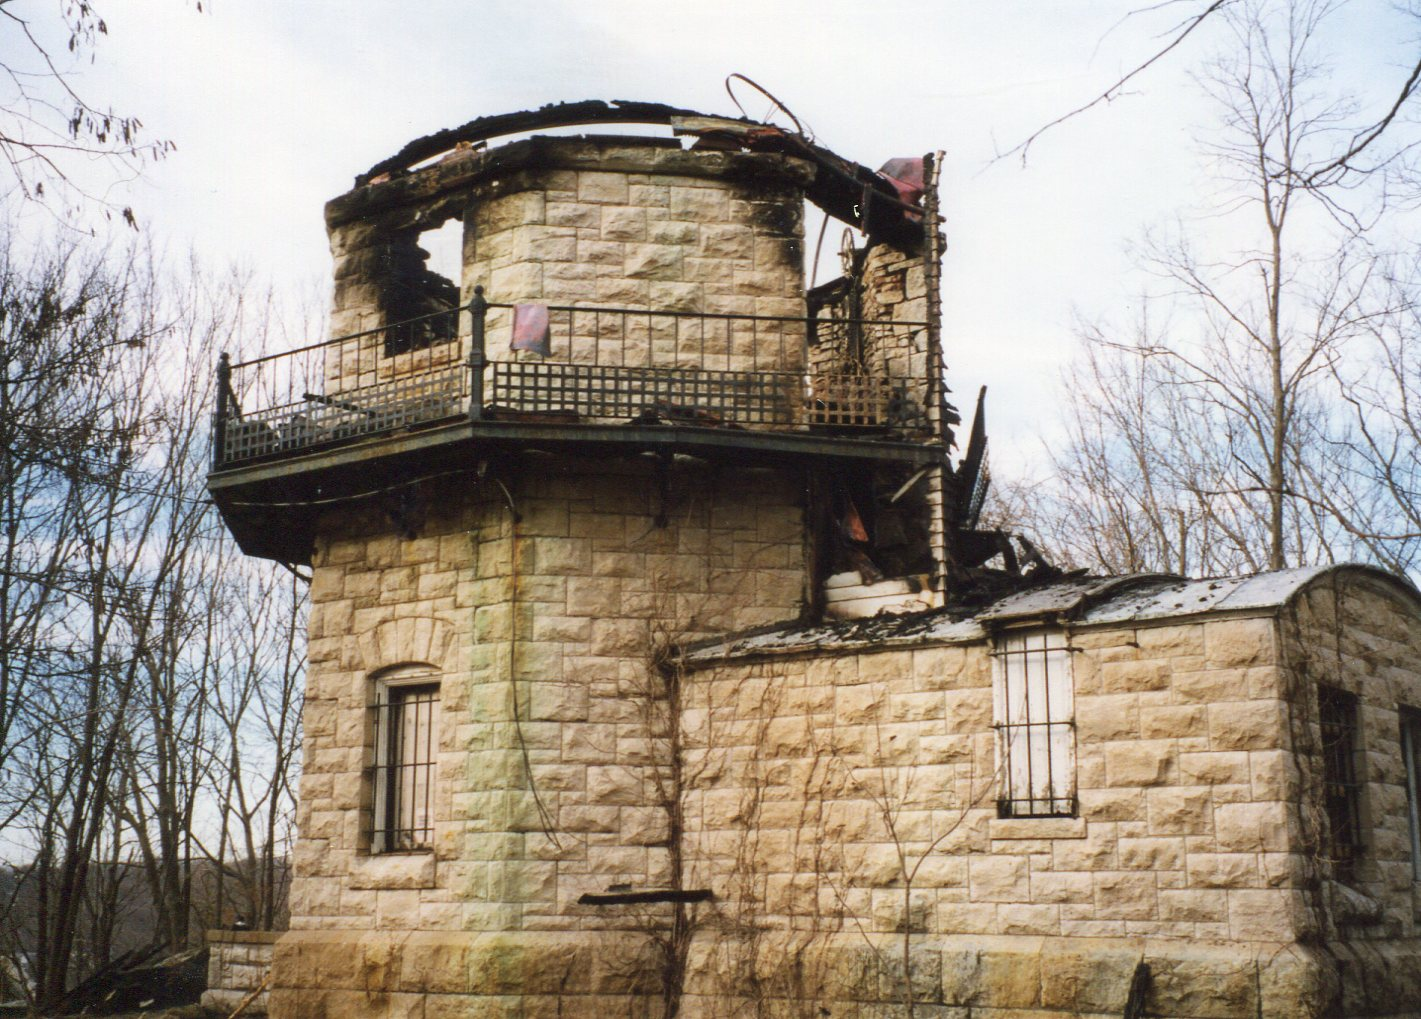 Limestone foundation after the fire.